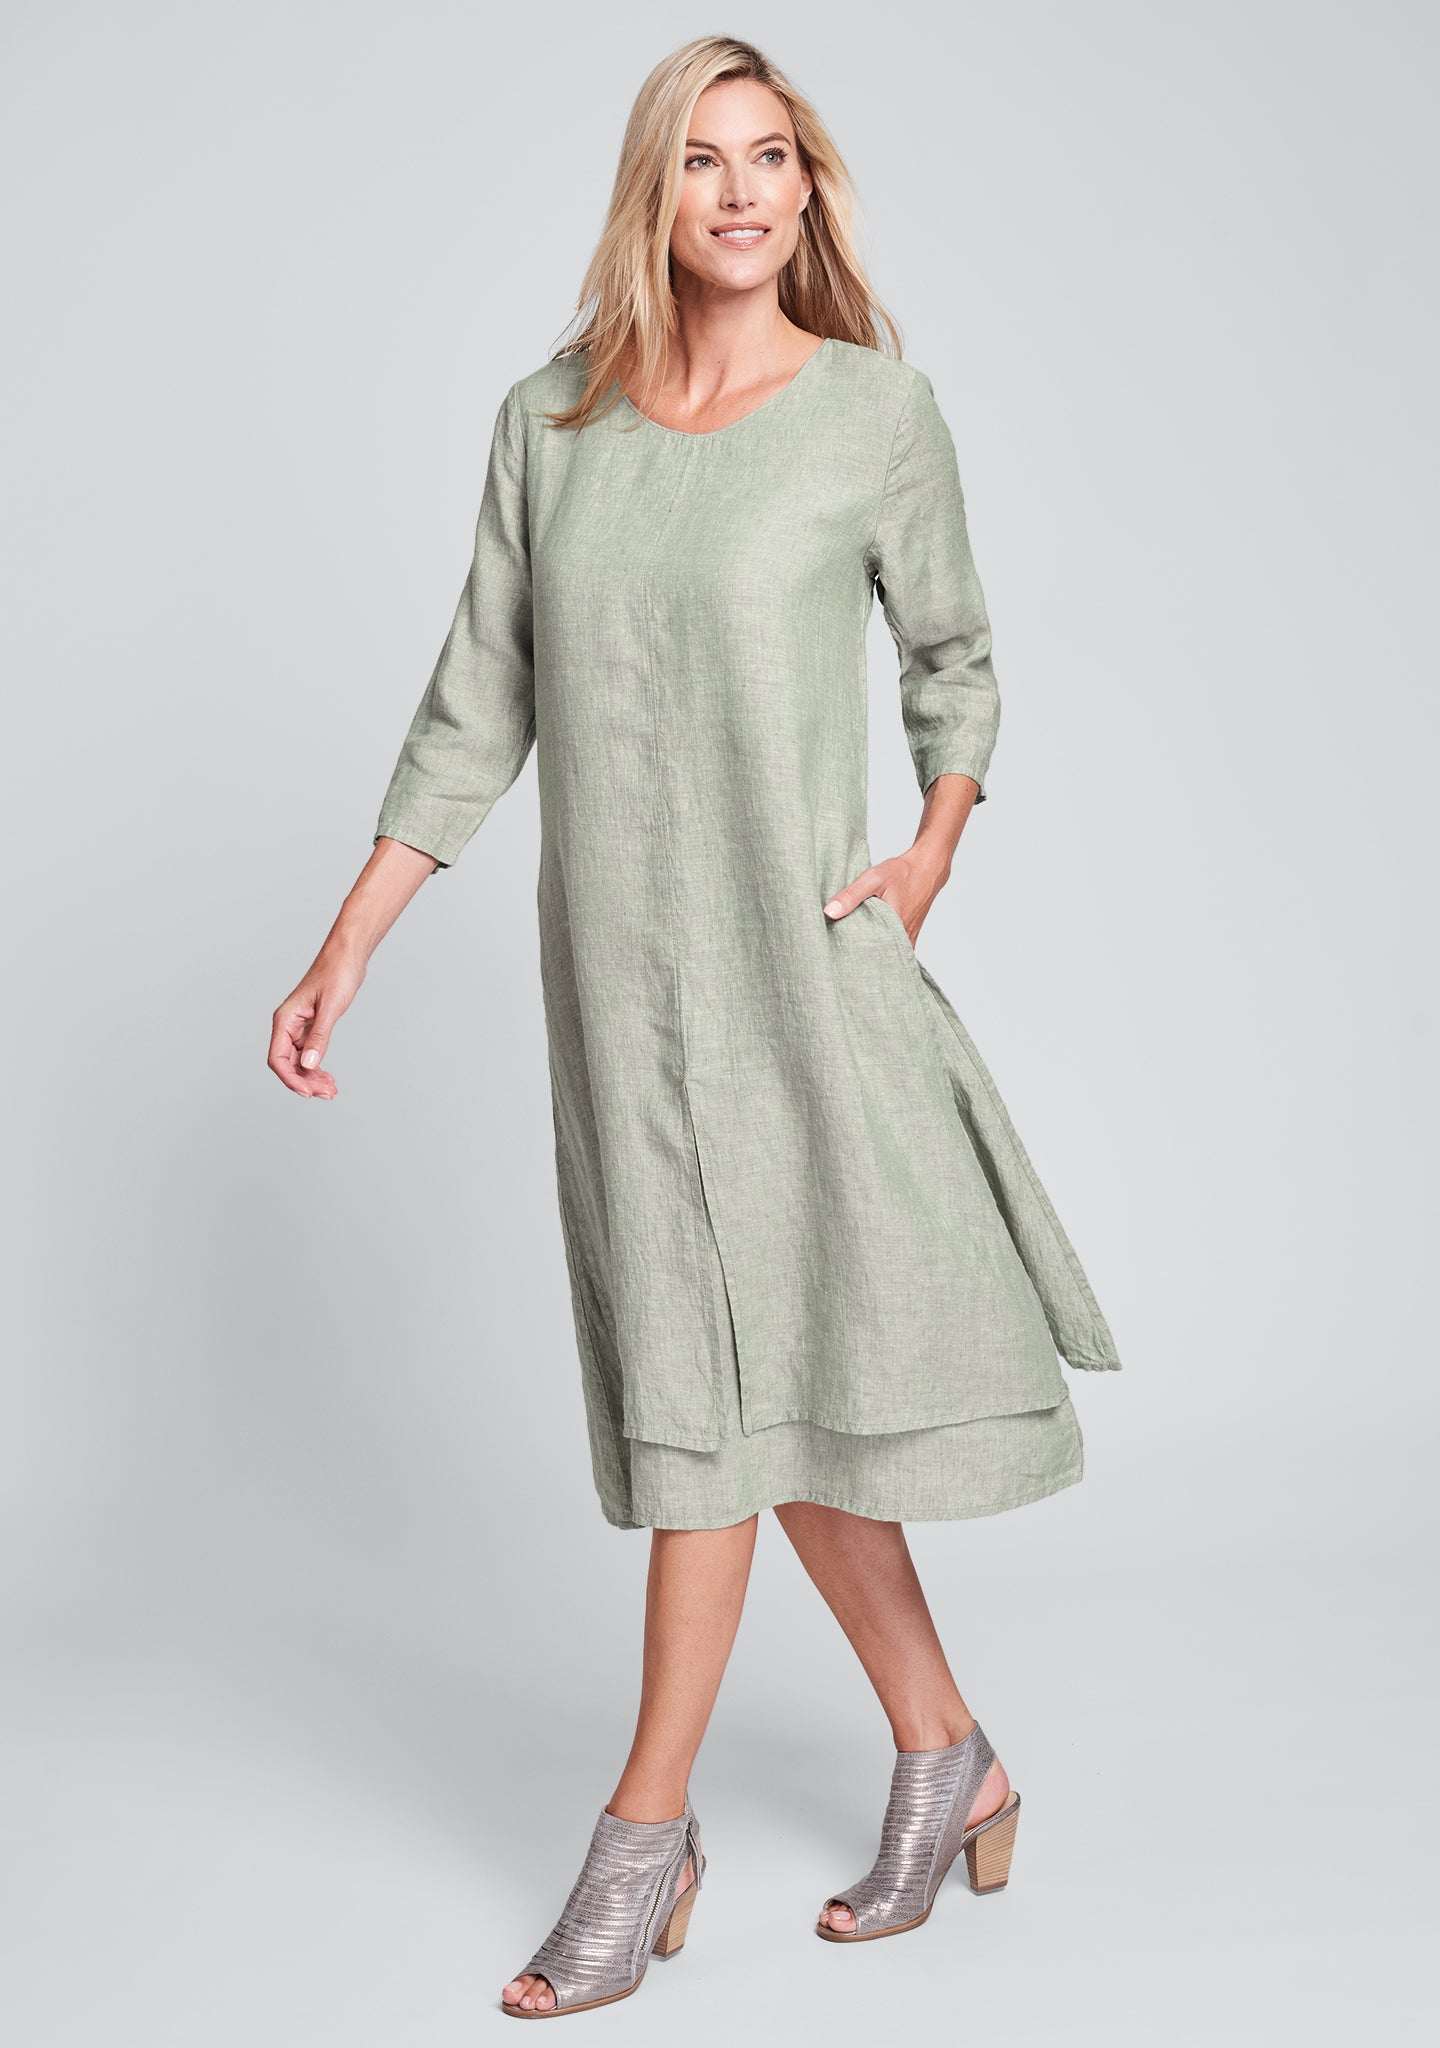 encore dress linen midi dress green